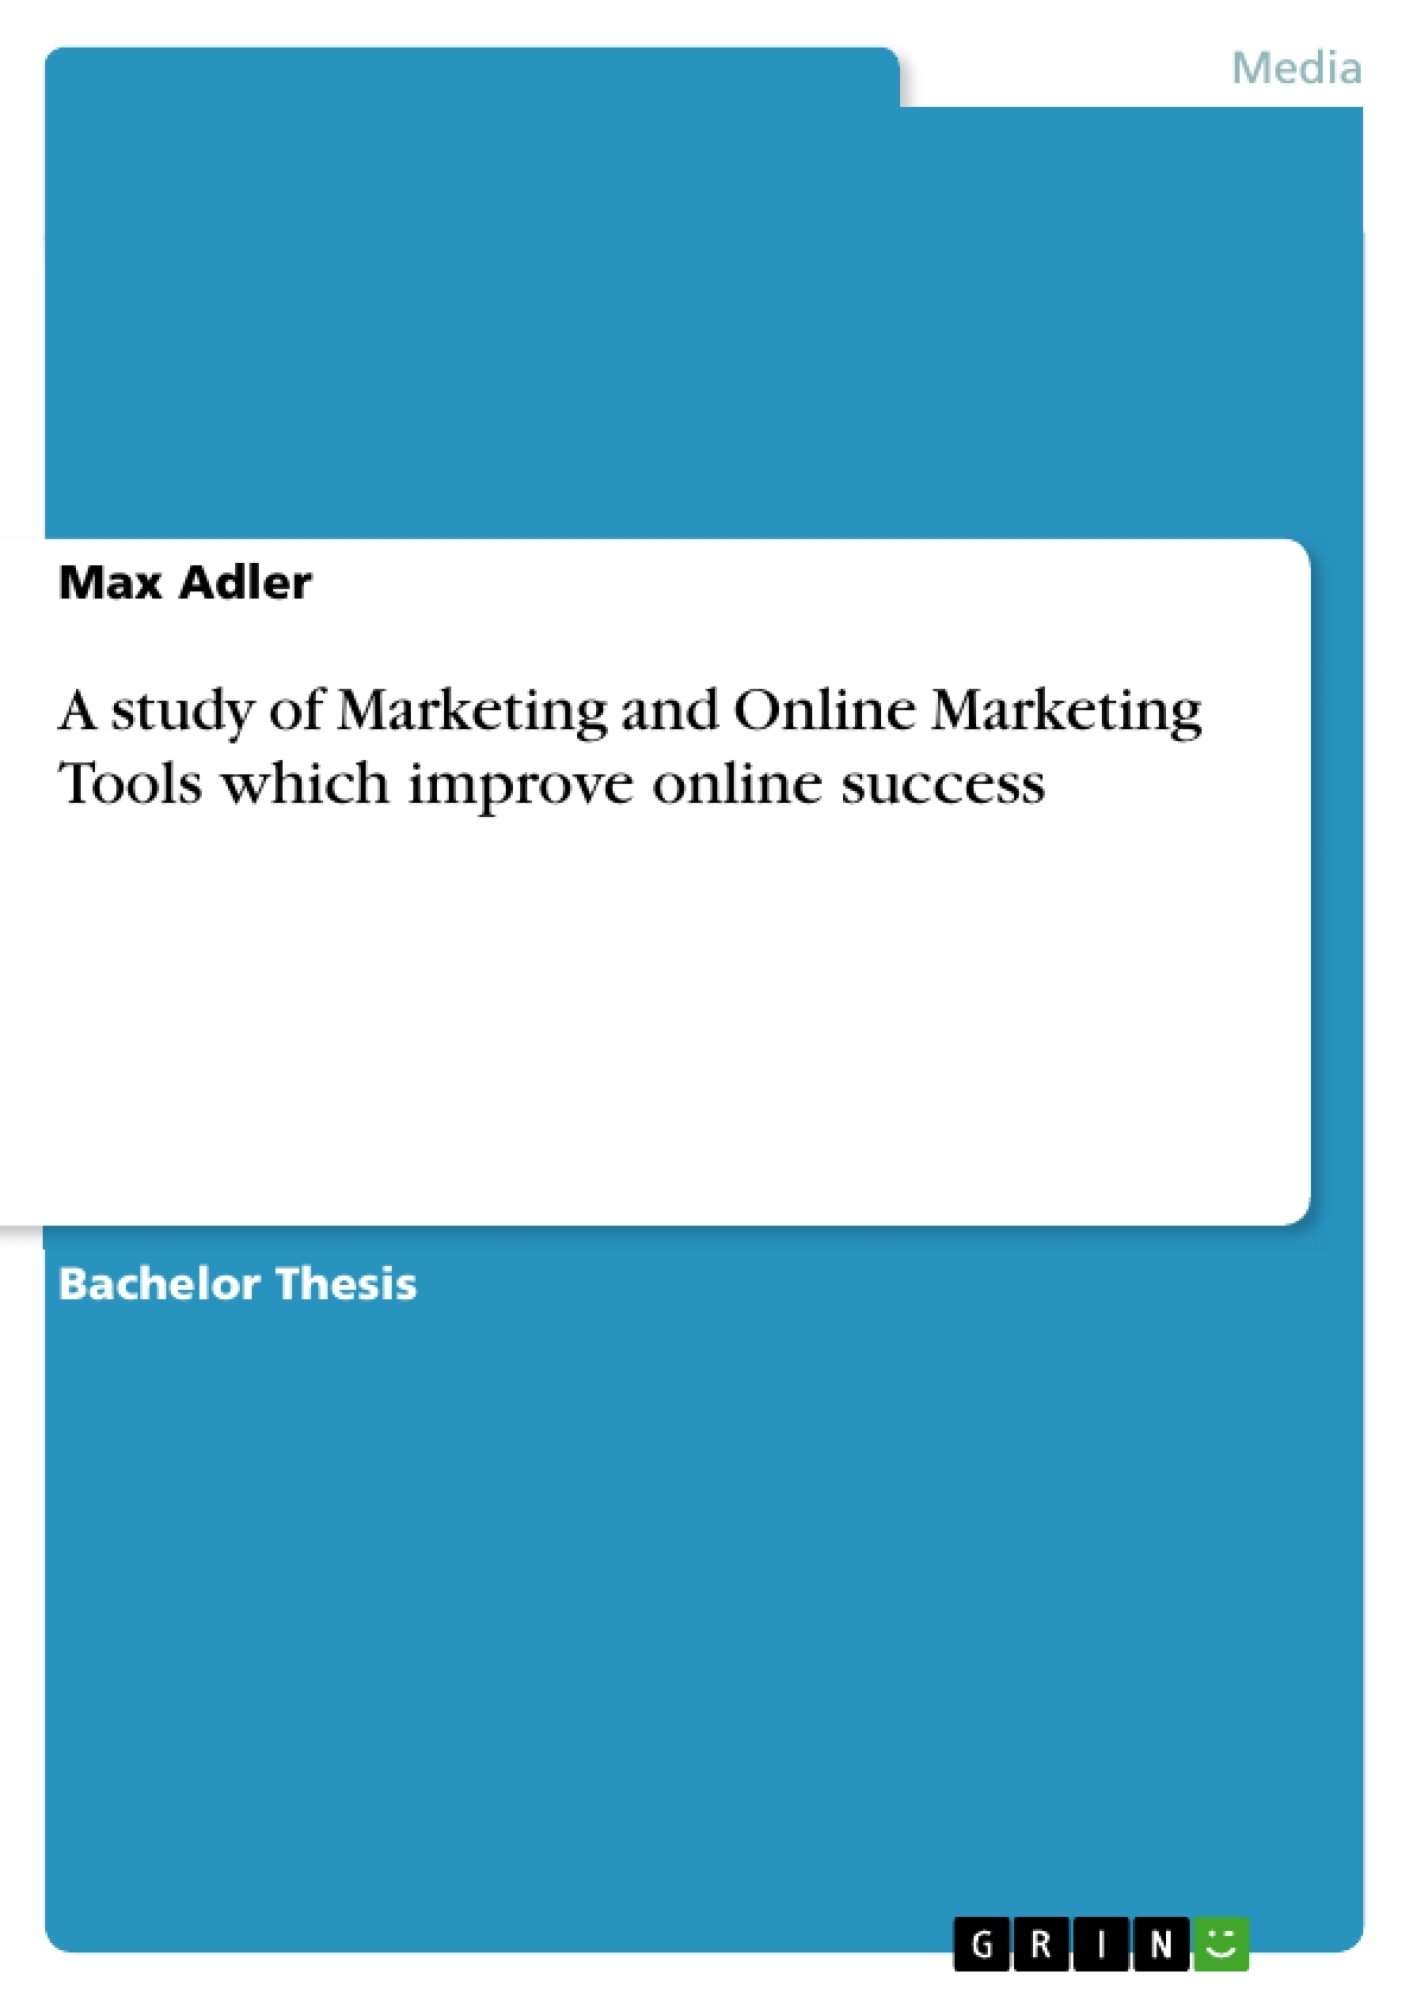 Title: A study of Marketing and Online Marketing Tools which improve online success